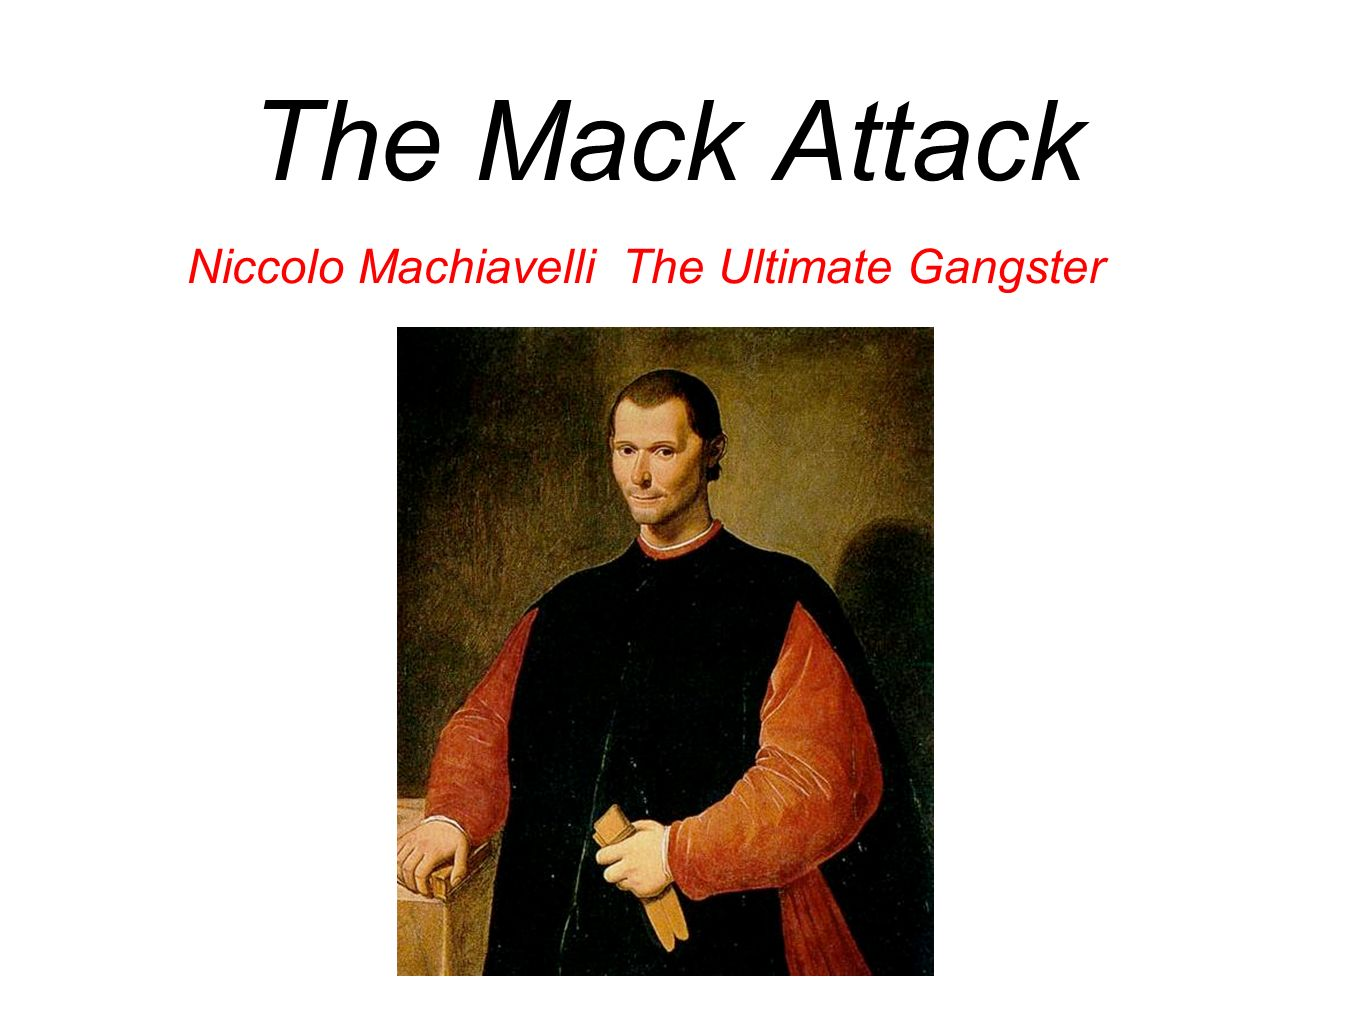 Machiavelli: Cruelty Well Used